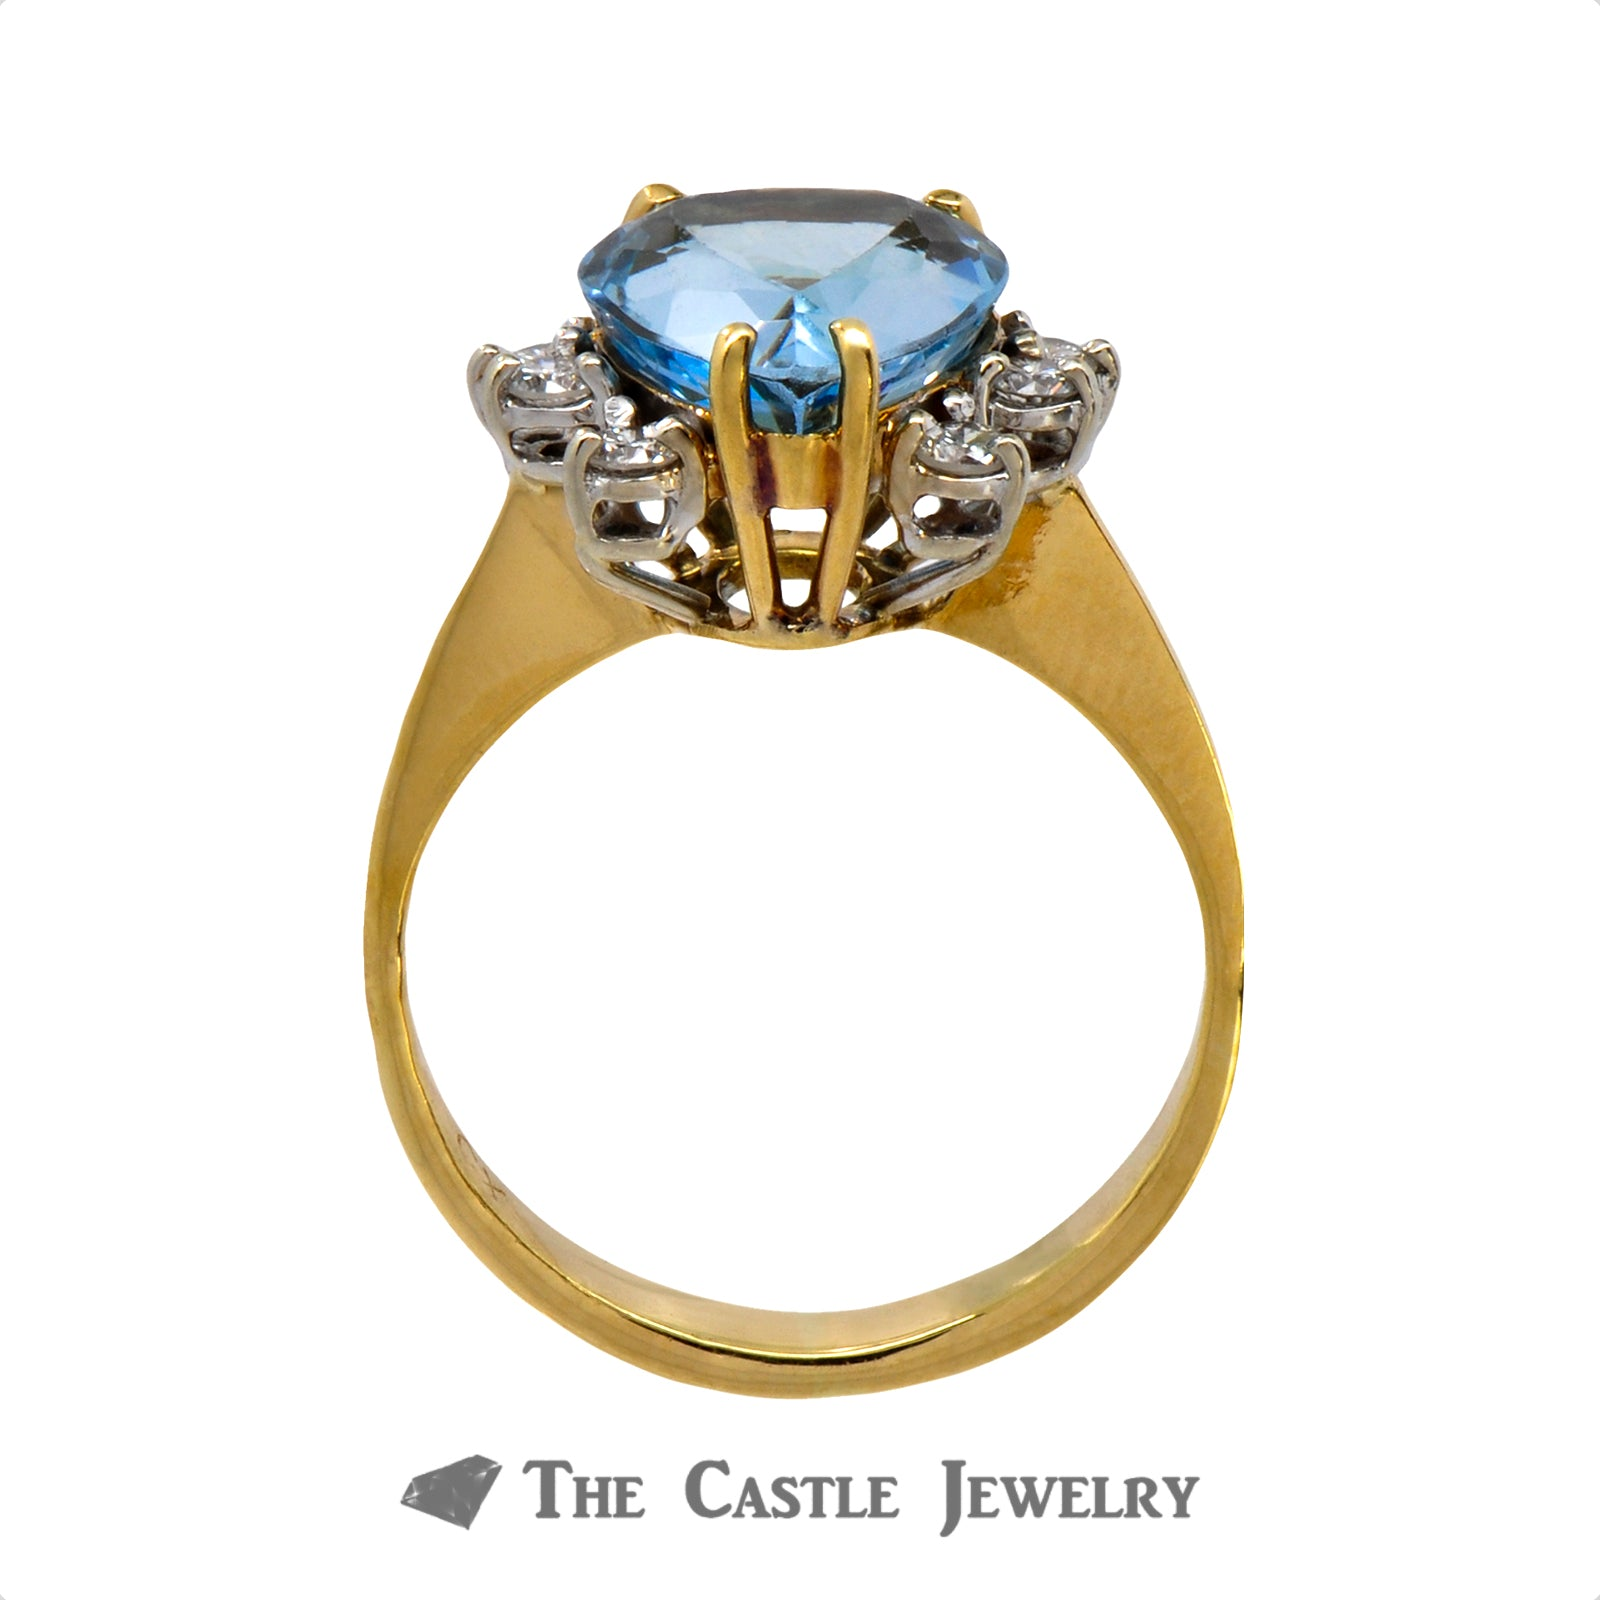 Vibrant Pear Cut Aquamarine Ring with Round Diamond Accents in 18k Yellow Gold-1